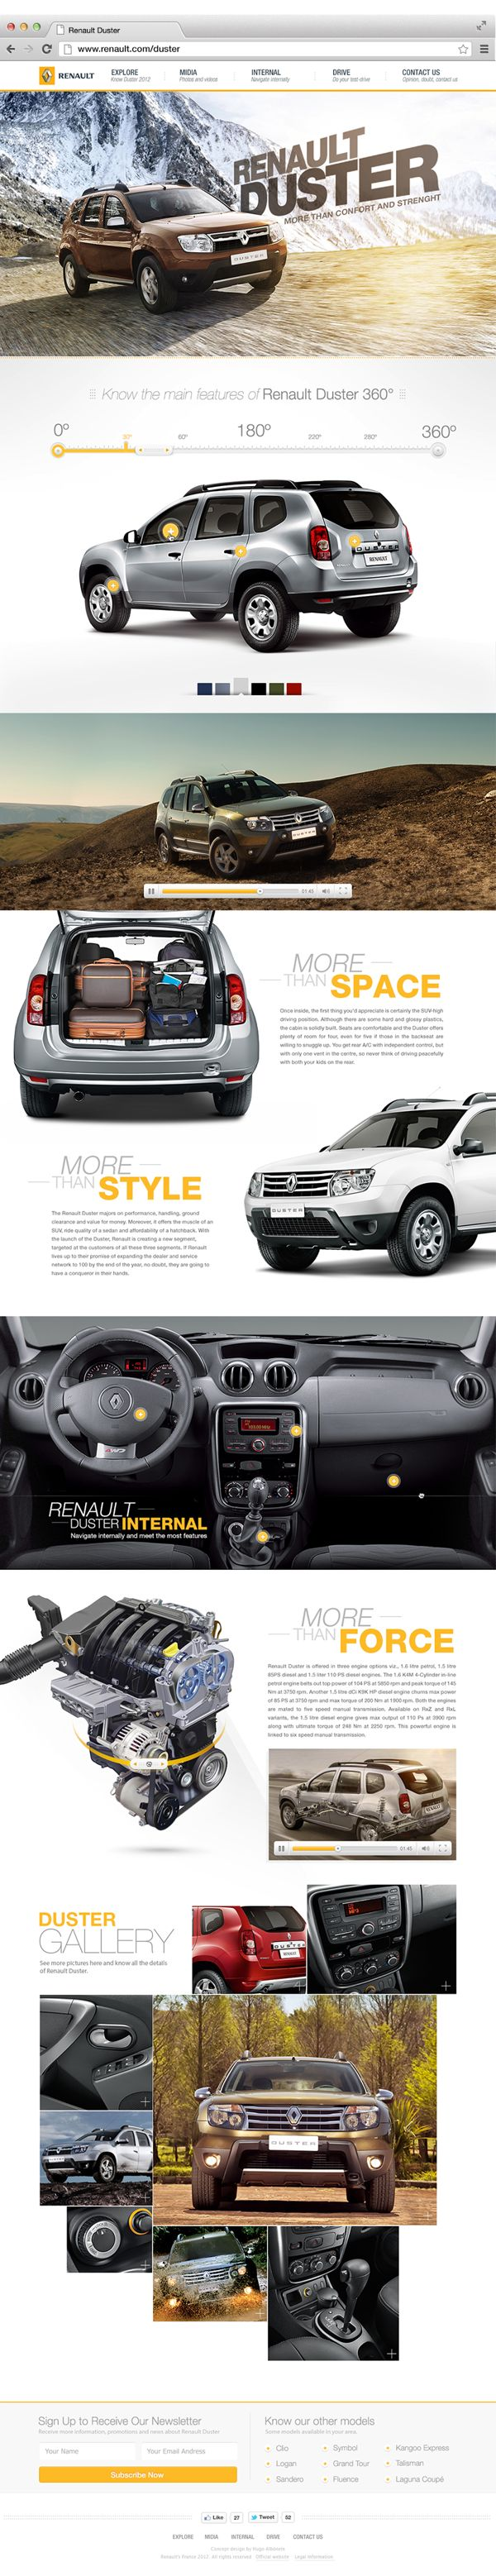 Cool Automotive Web Design on the Internet. Renault. #automotive #webdesign @ http://www.pinterest.com/alfredchong/automotive-web-design/